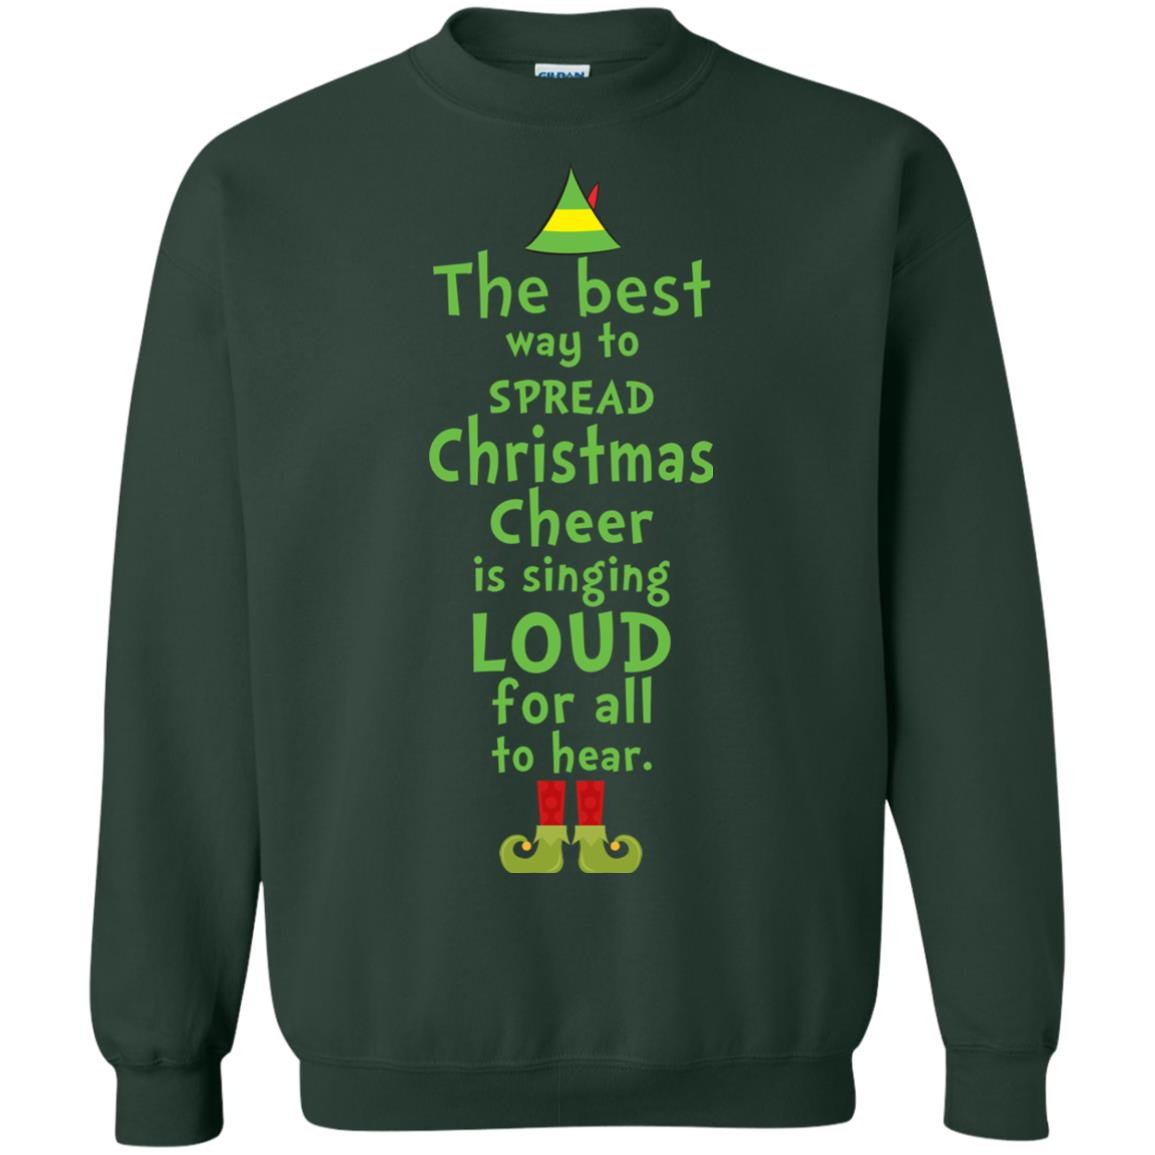 image 2464 - The best way to spread Christmas cheer is singing loud for all to hear Sweater, Shirt